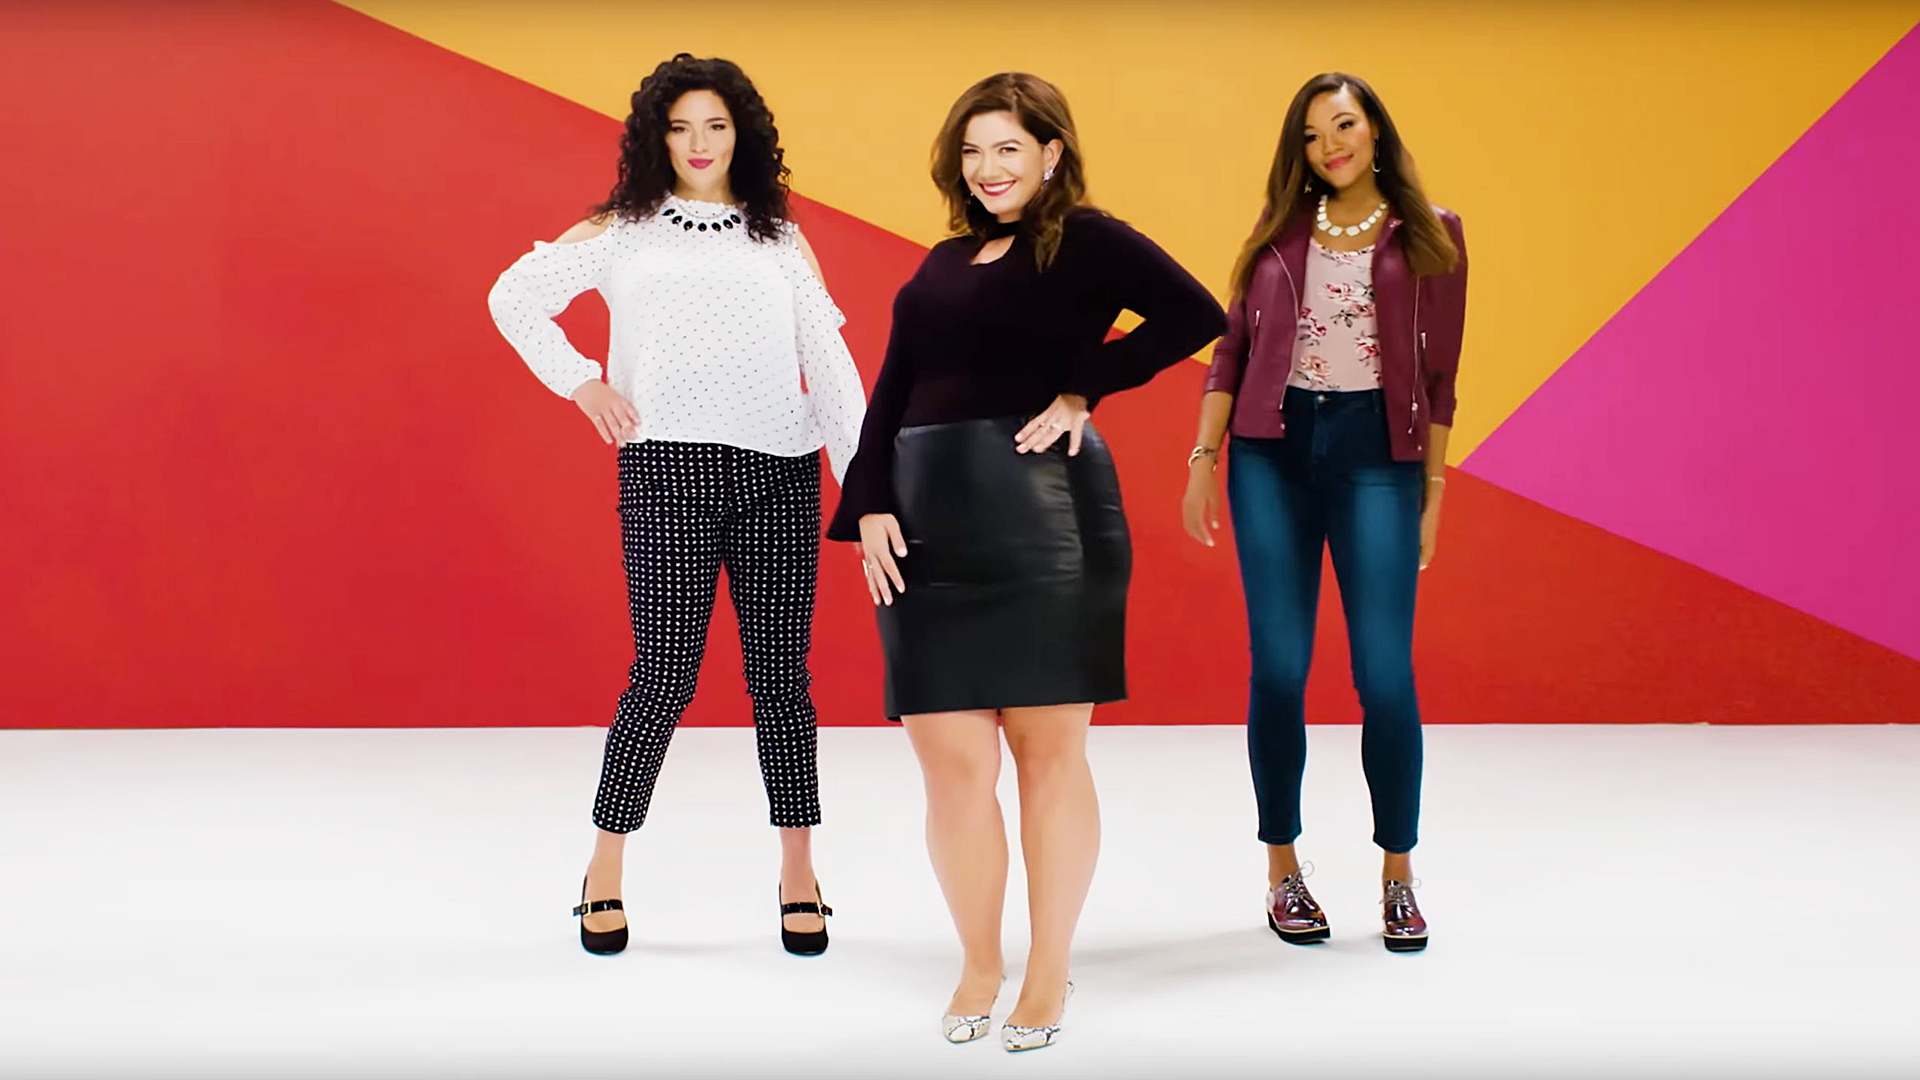 bb84935f19b Kmart is renames 'plus-size' section 'Fabulously Sized'